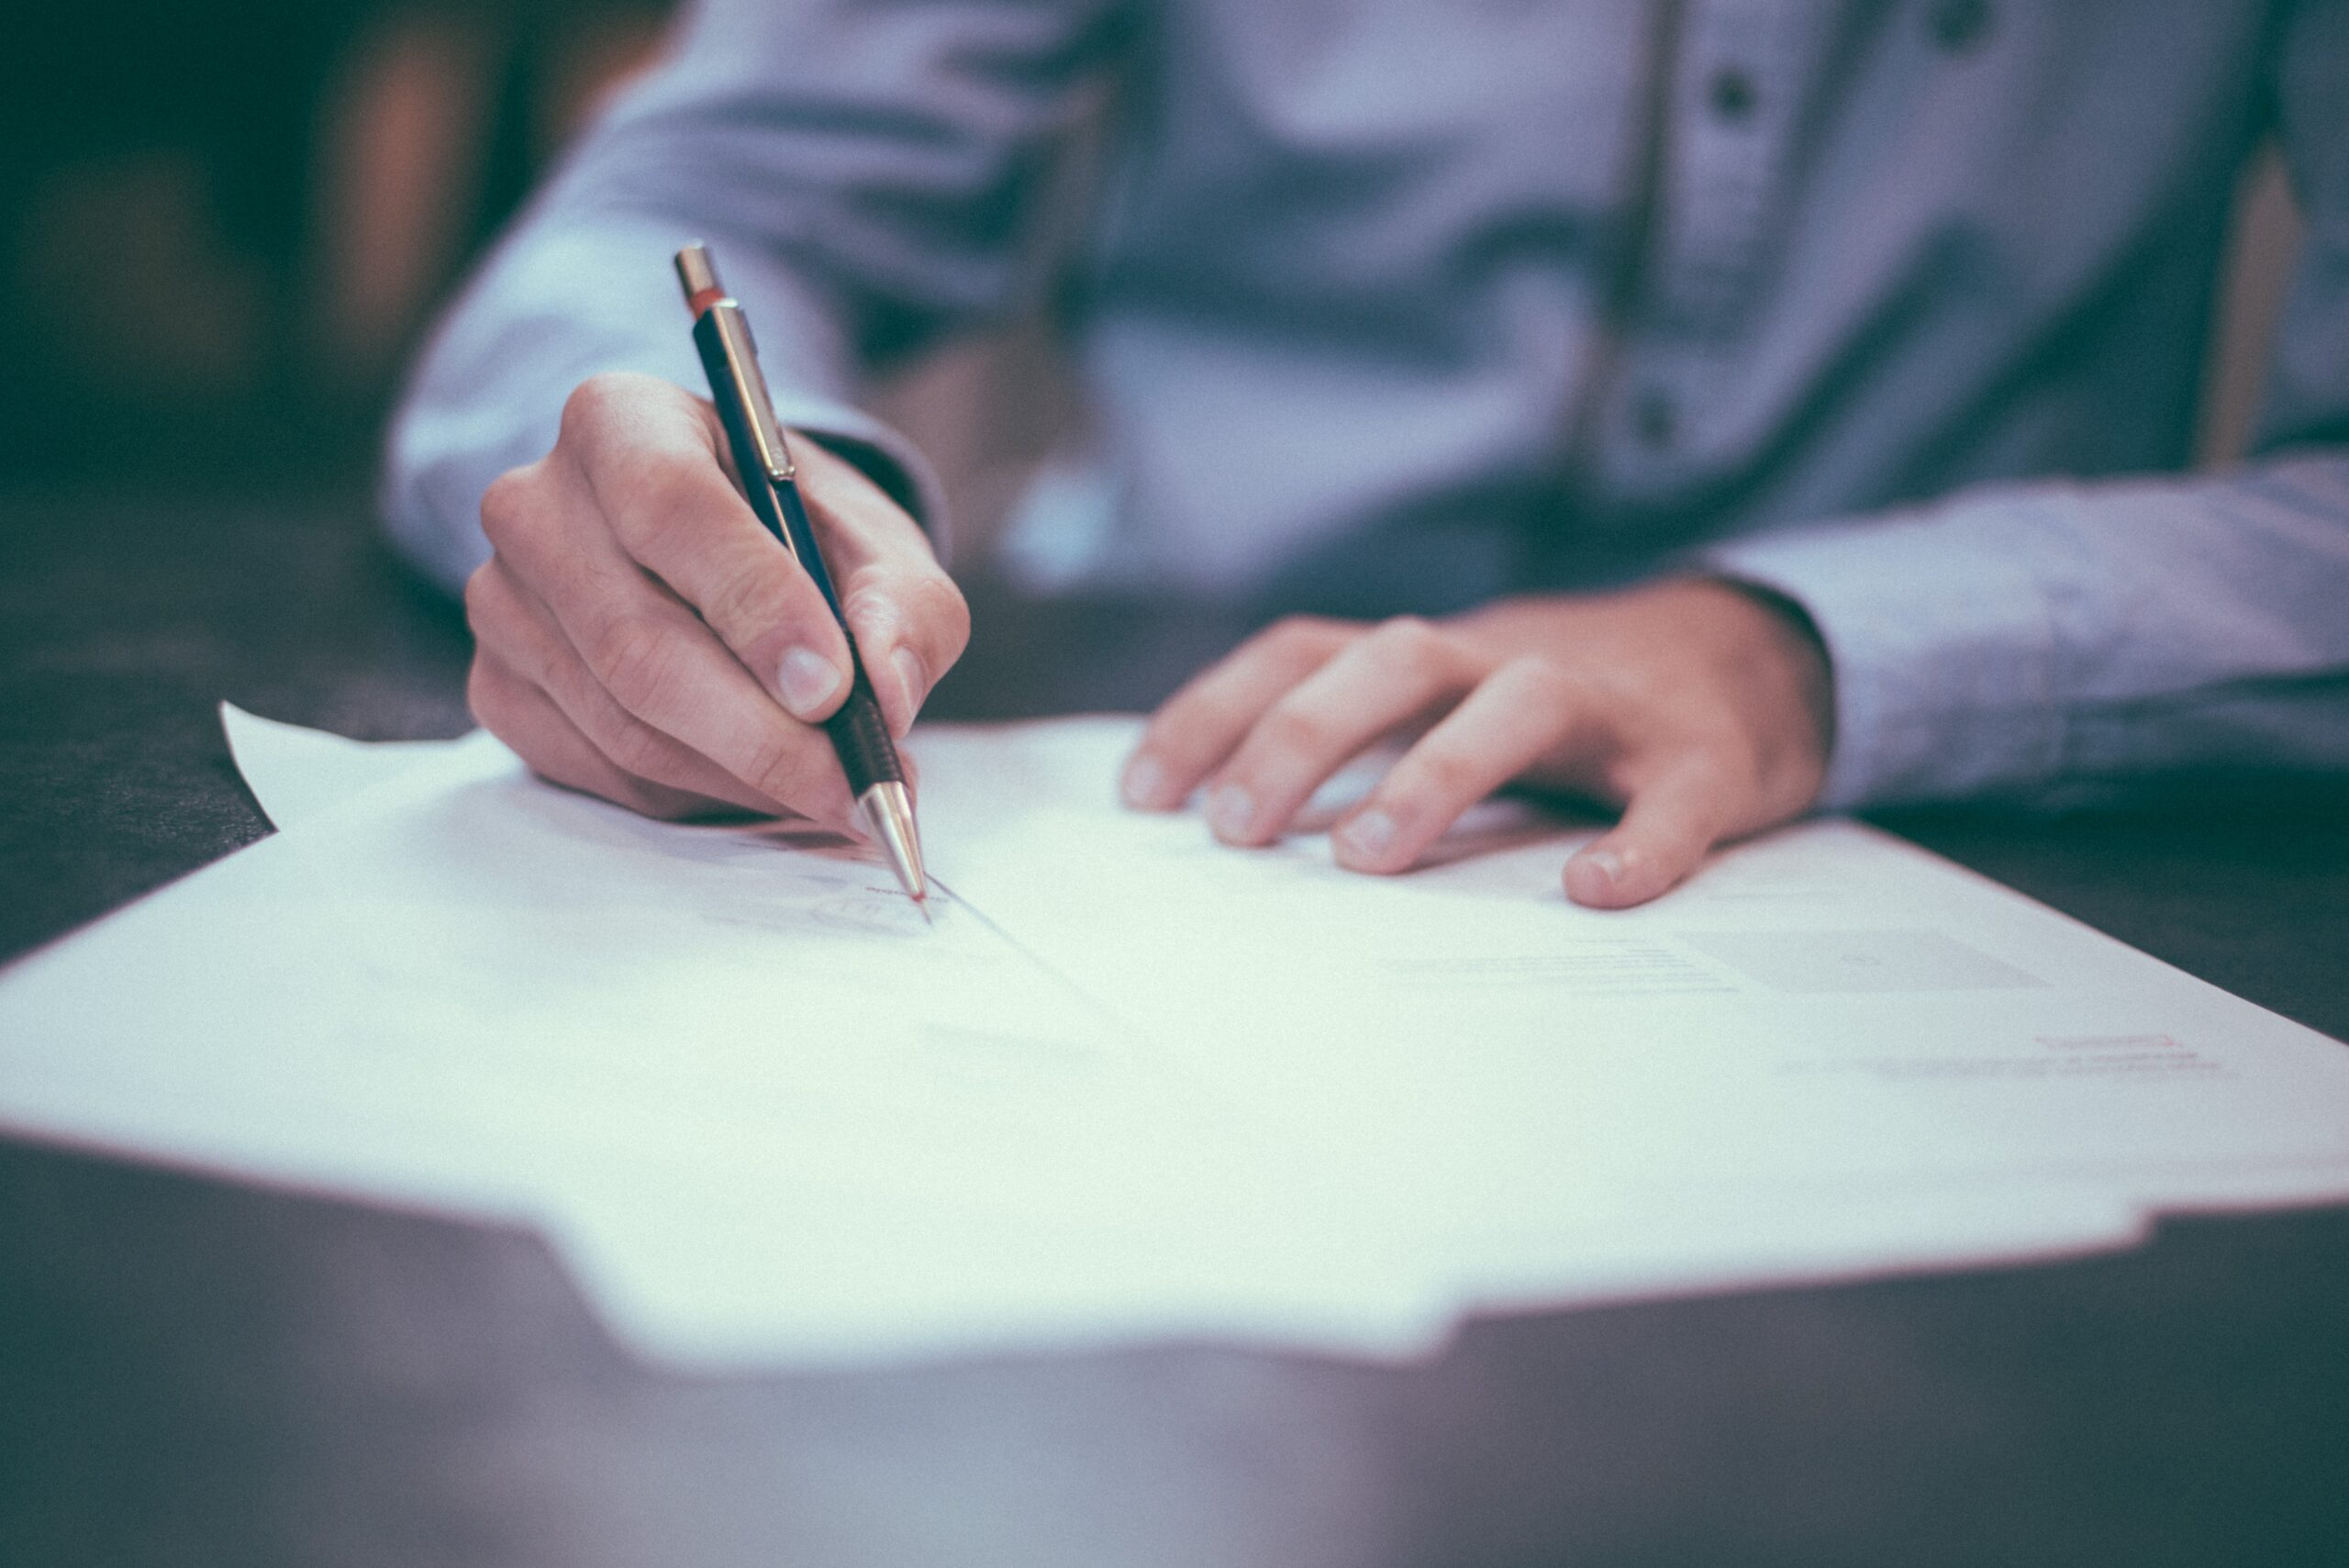 Man filling out a job application with a pen and paper